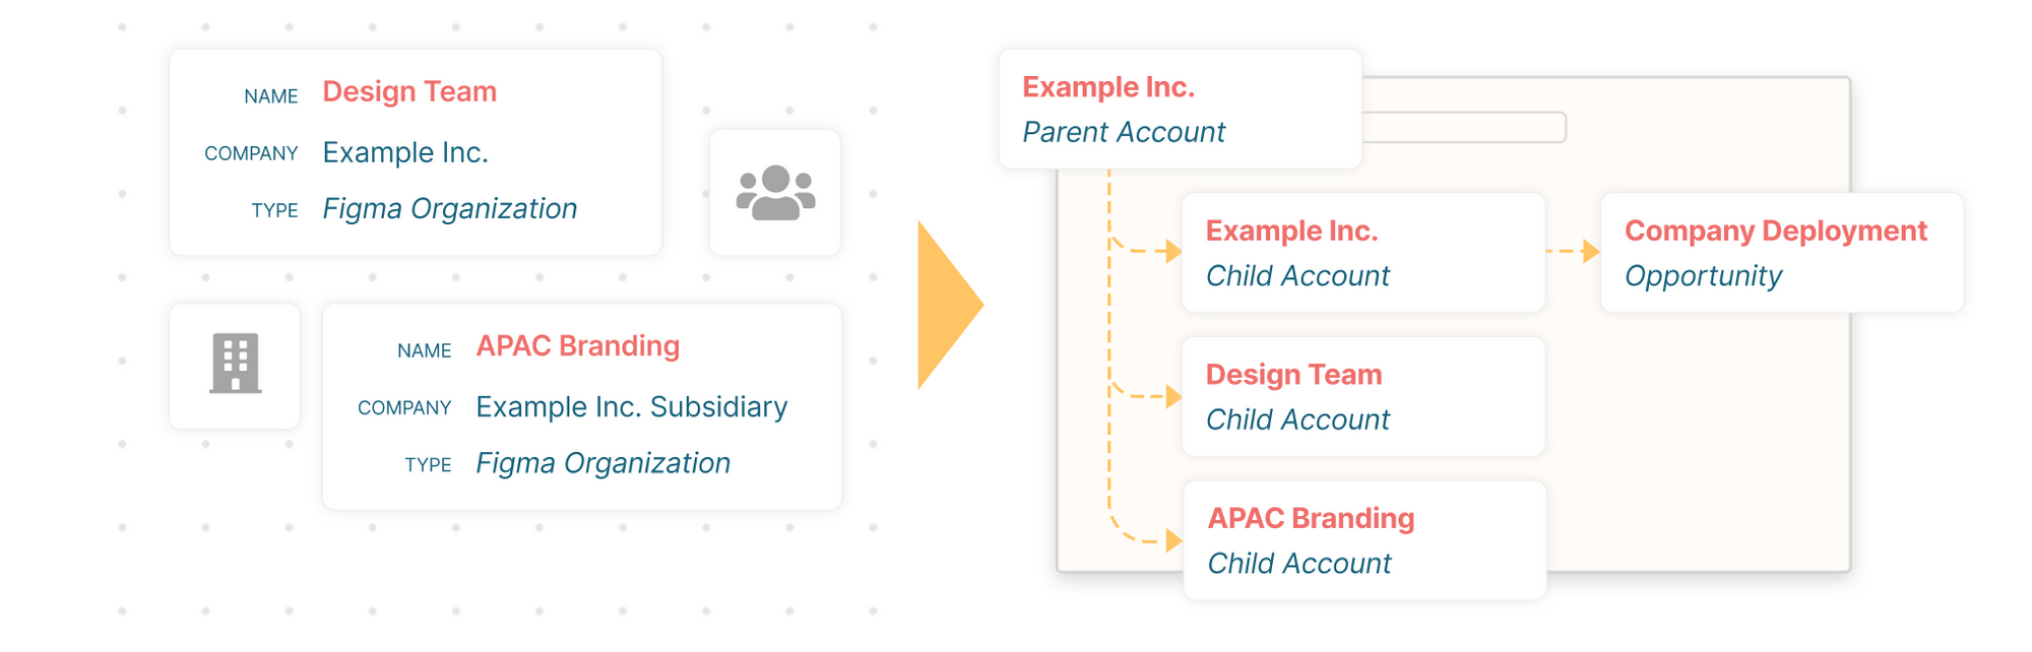 Figma hierarchy of accounts illustration